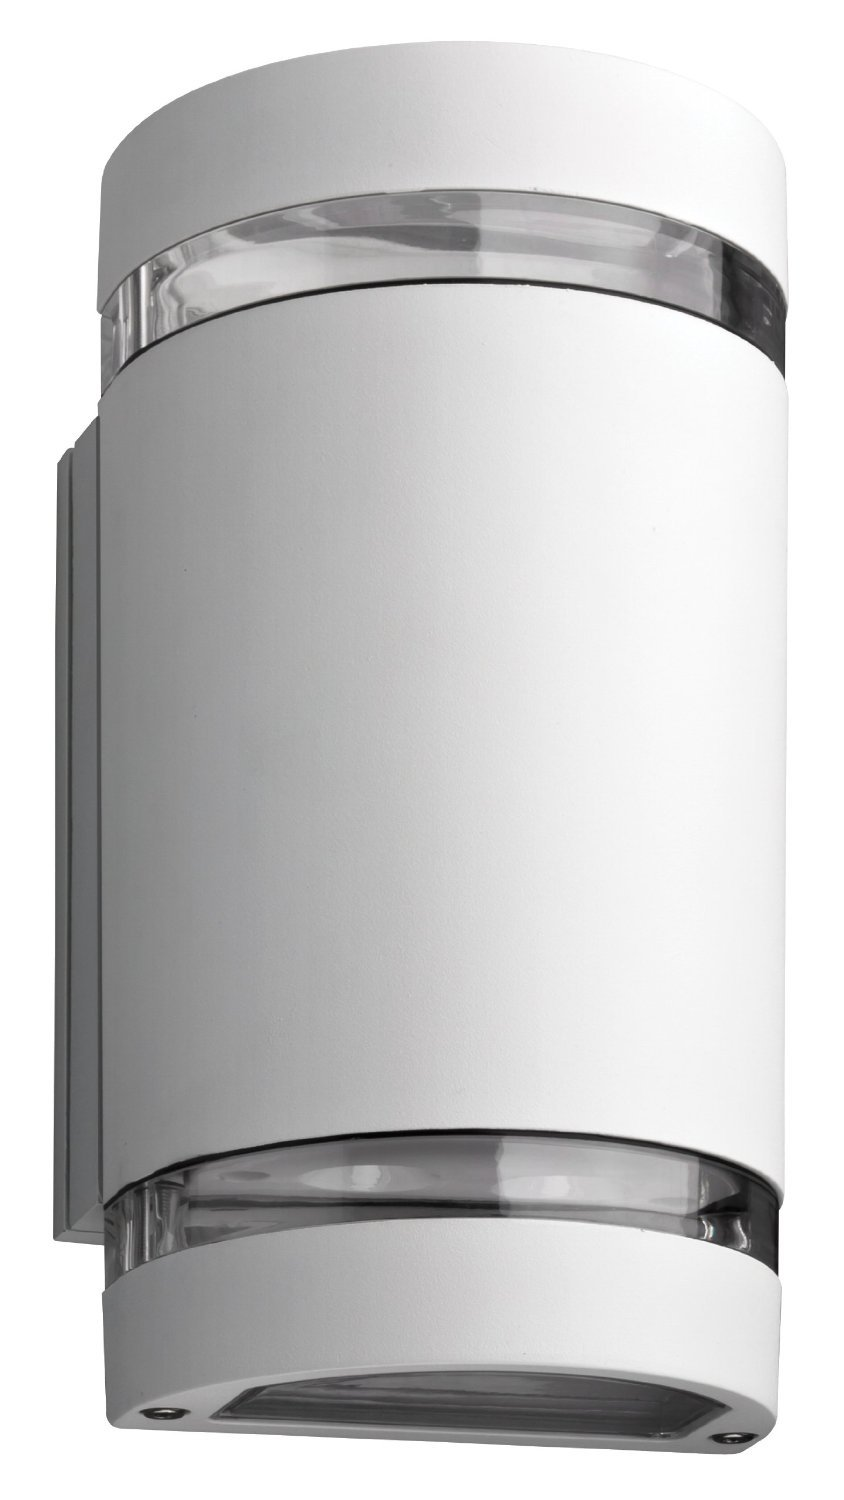 Lithonia Lighting OLLWU WH M6 Outdoor LED Wall Cylinder 2-Light Up and Down